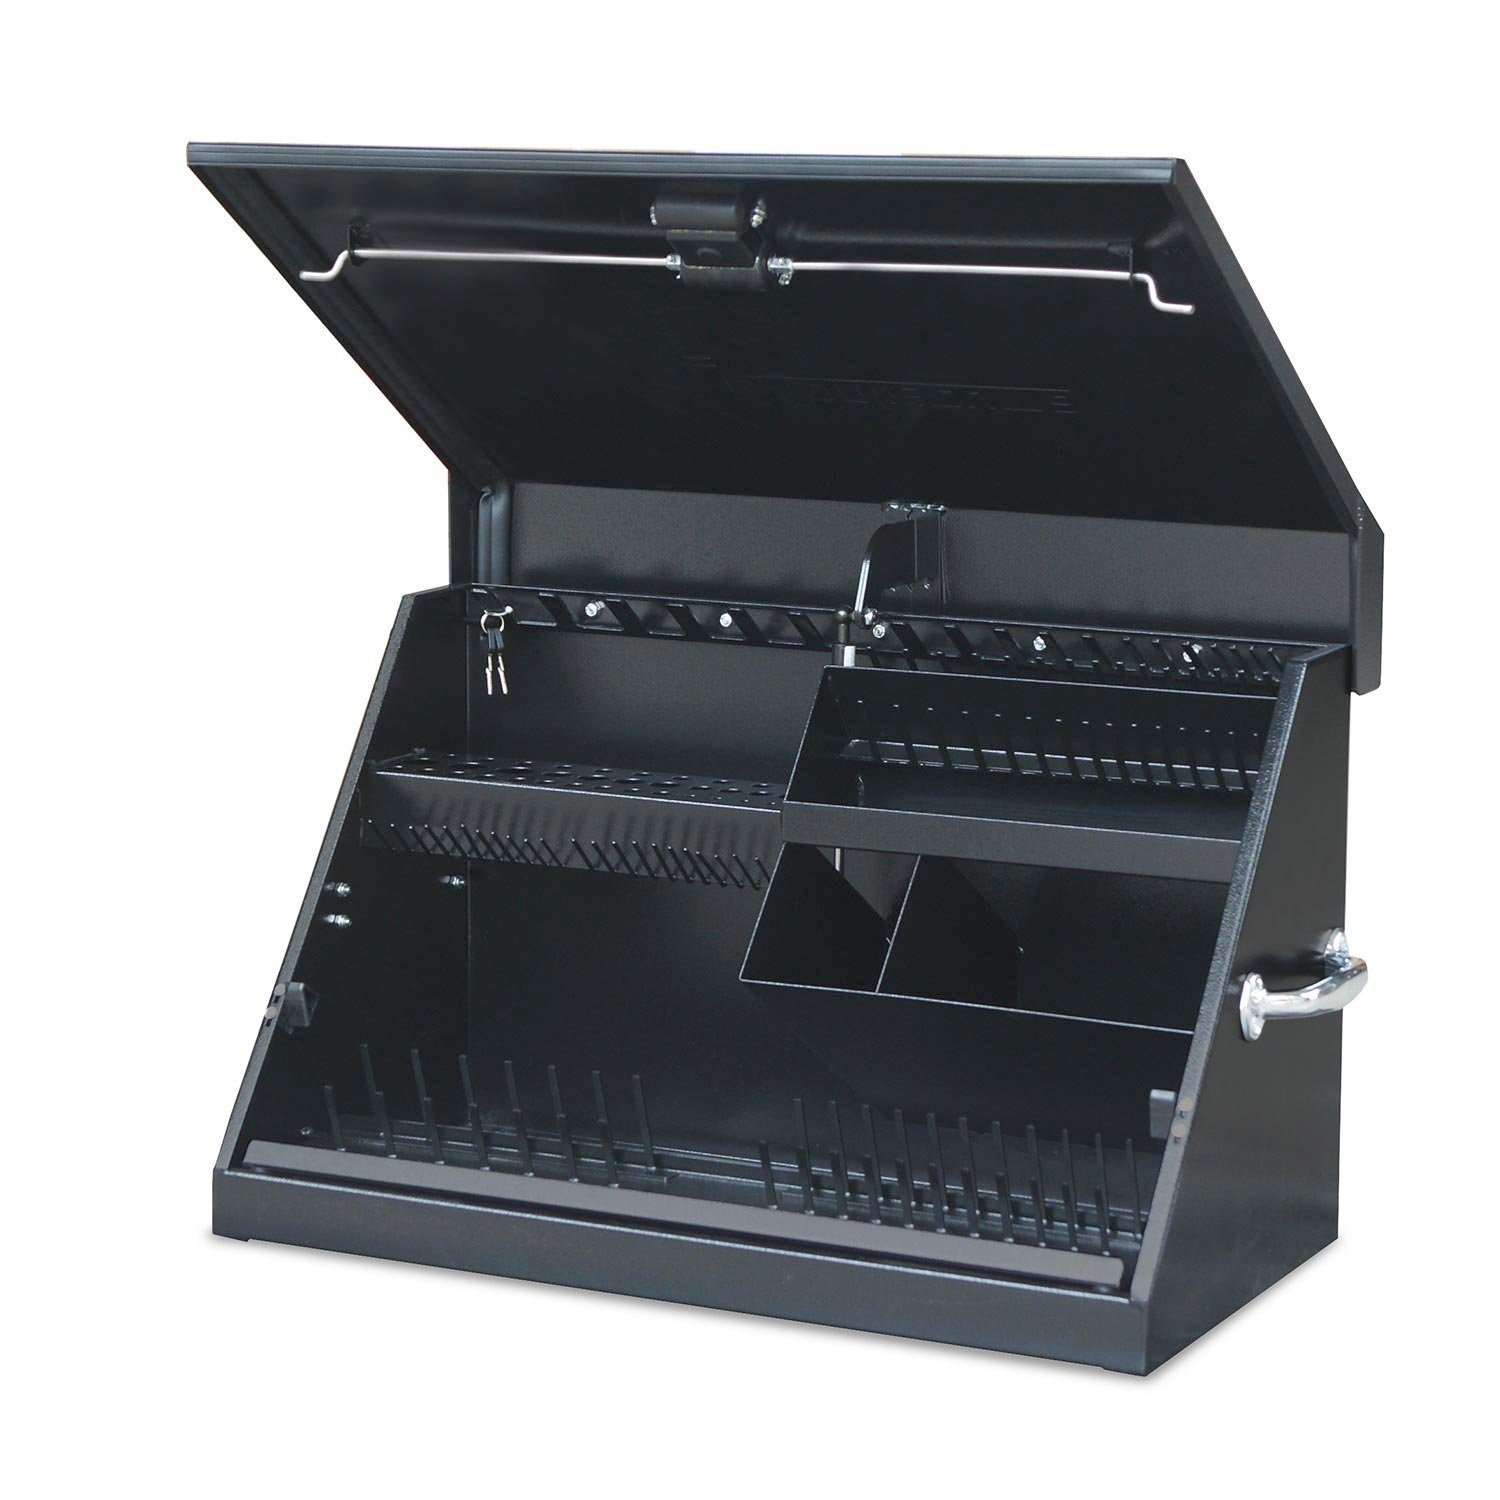 Montezuma - ME300B - 30-Inch Portable TRIANGLE Toolbox - Multi-Tier Design - 16-Gauge Construction - SAE and Metric Tool Chest - Weather-Resistant Toolbox - Lock and Latching System by Montezuma